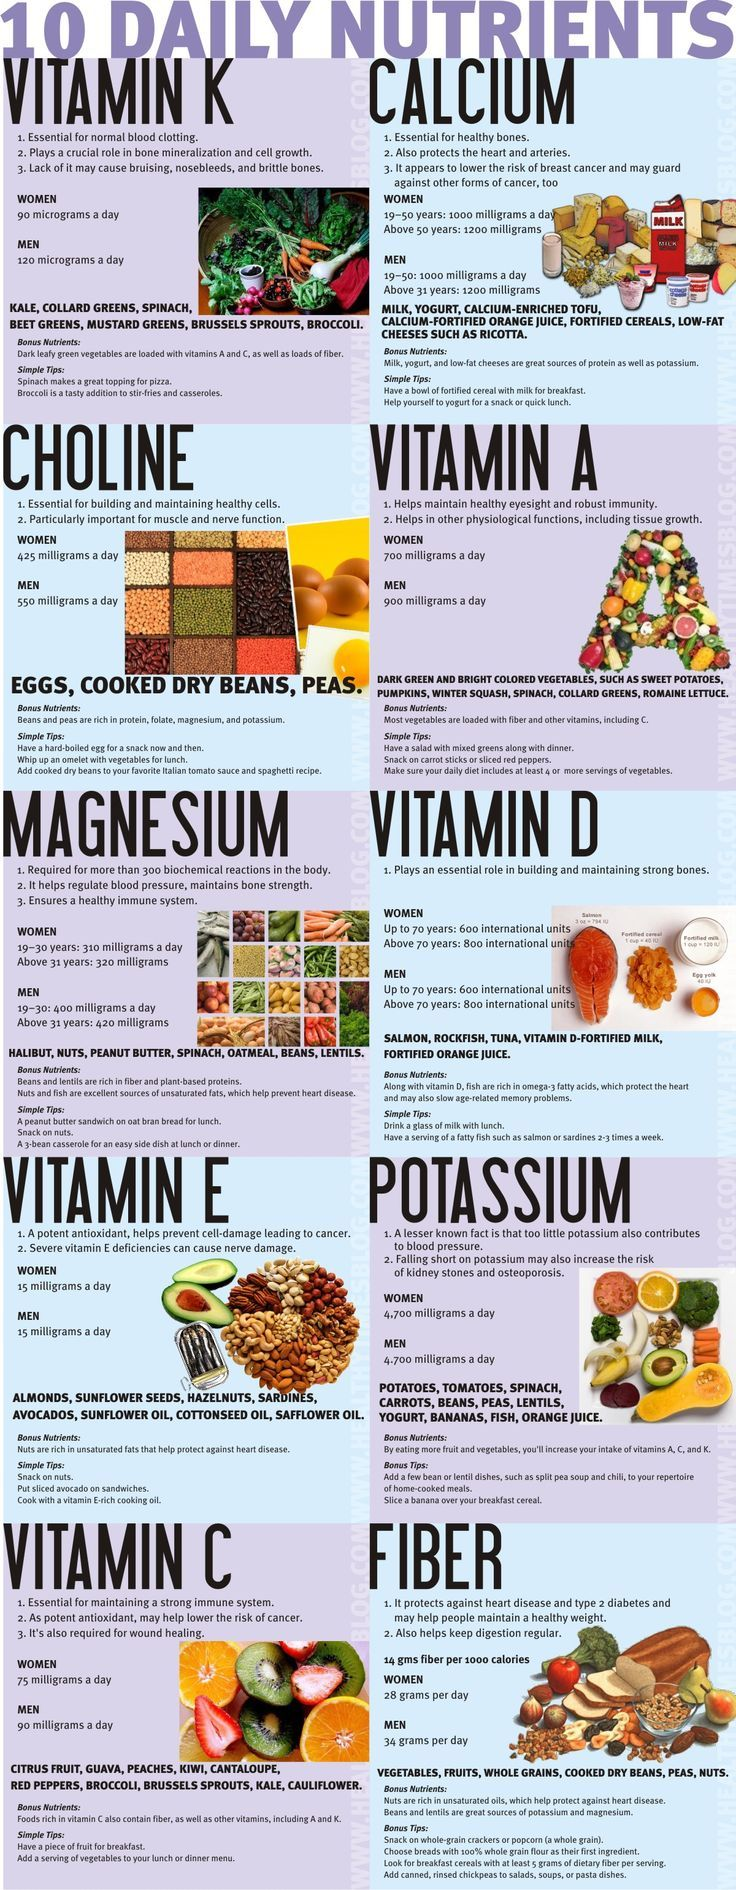 what diet to elemi.ate gurd